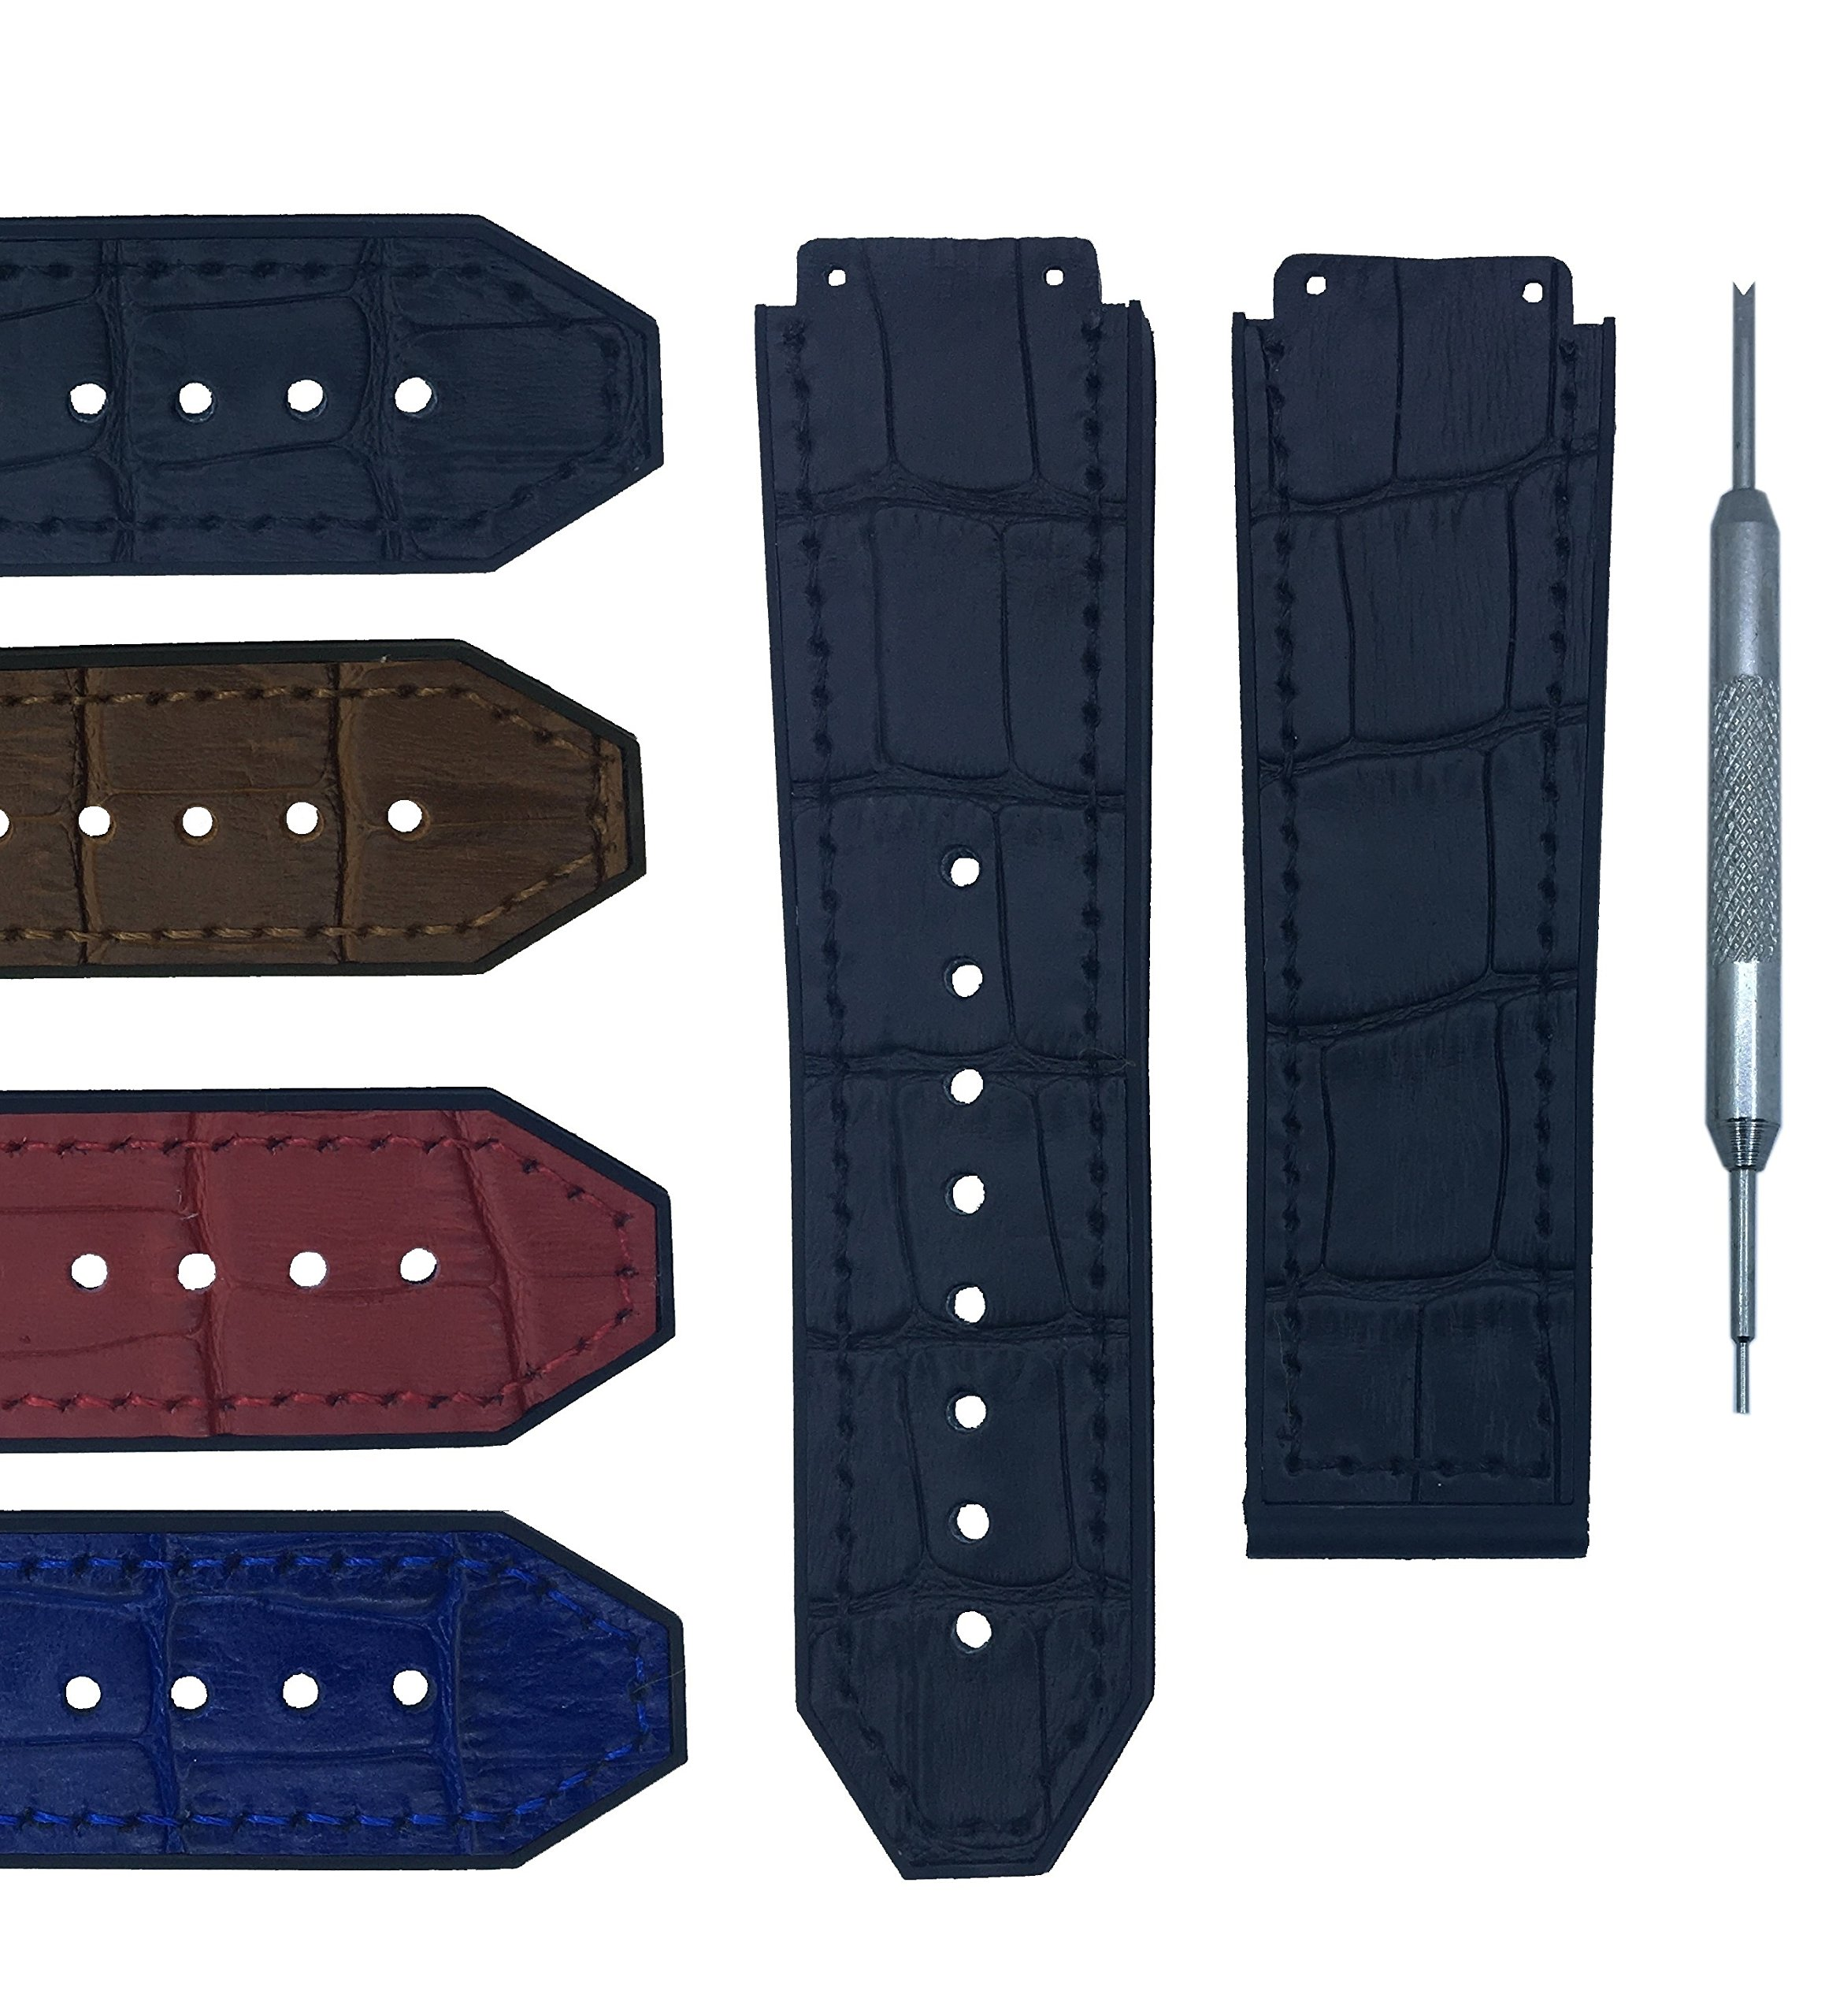 20x26mm Leather Watch Band Strap For Bigbang - Free Spring Bar Tool (20X26, Black)